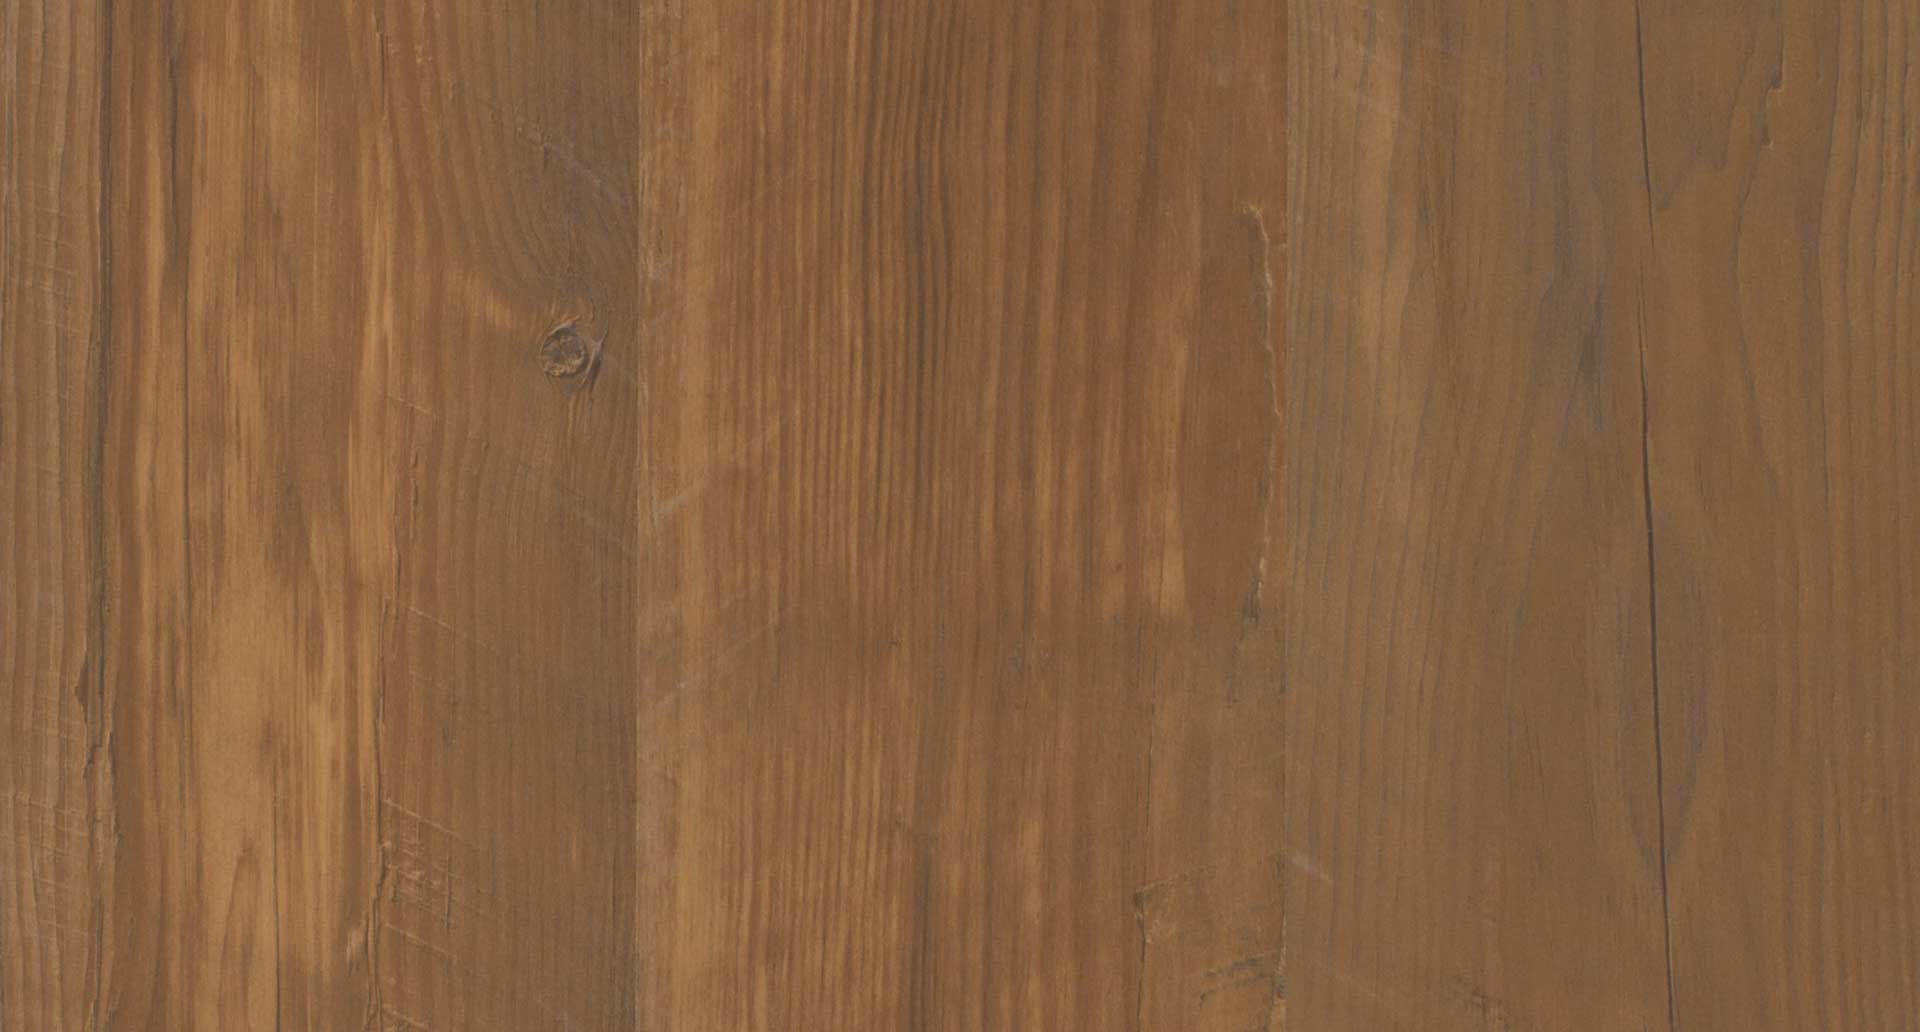 Ginger Spiced Pine smooth laminate floor. Warm ginger color, pine finish, 10mm 1-strip plank laminate flooring, easy to install, PERGO lifetime warranty.